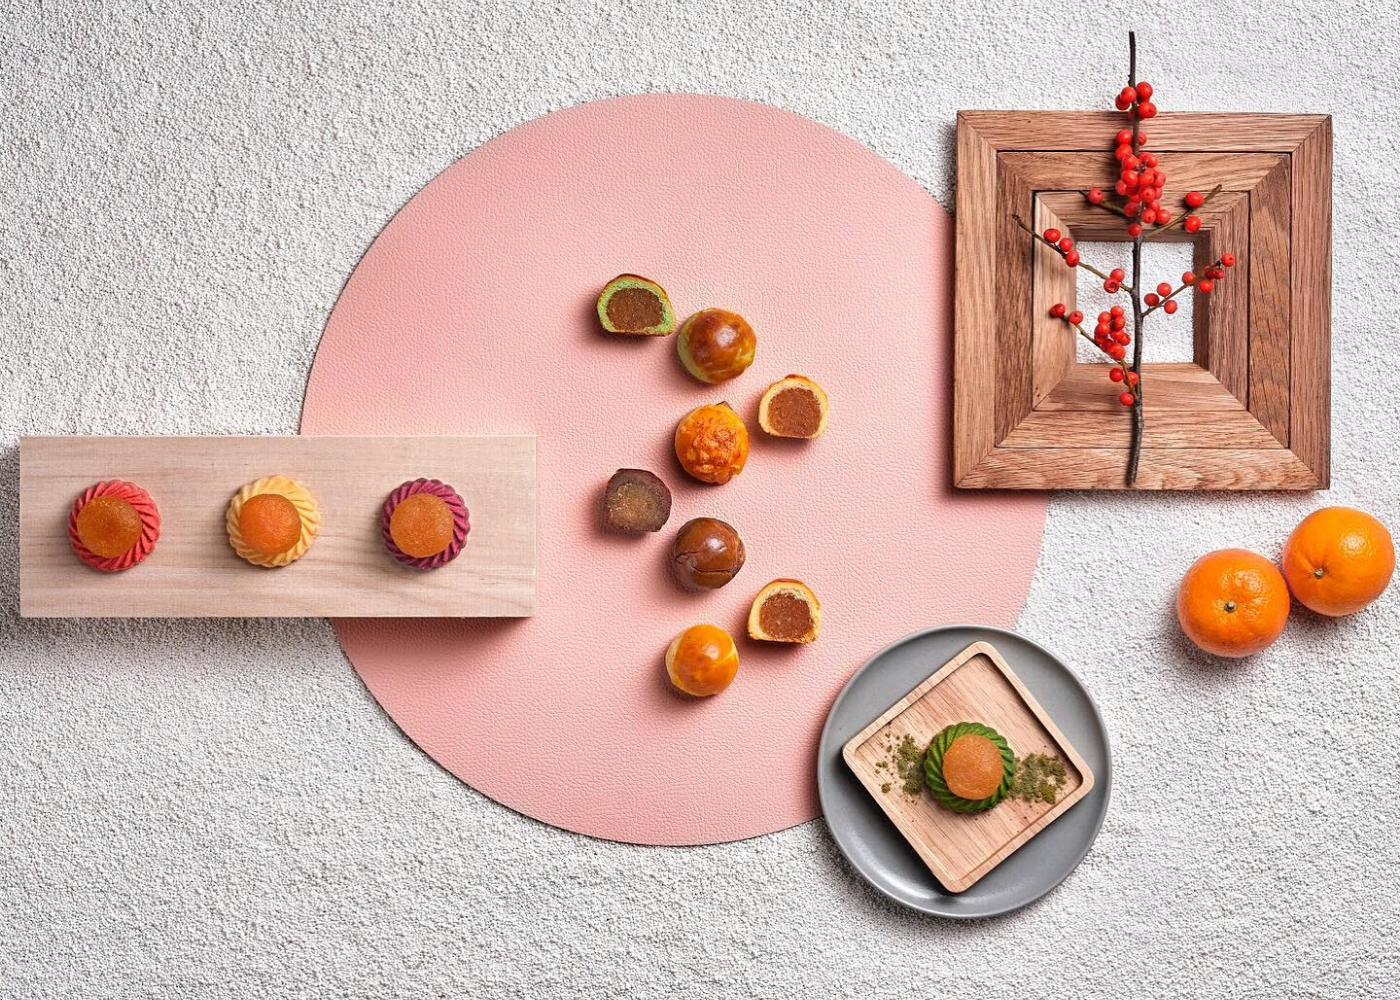 This year, we're ditching the traditional for CNY snacks with unconventional flavours